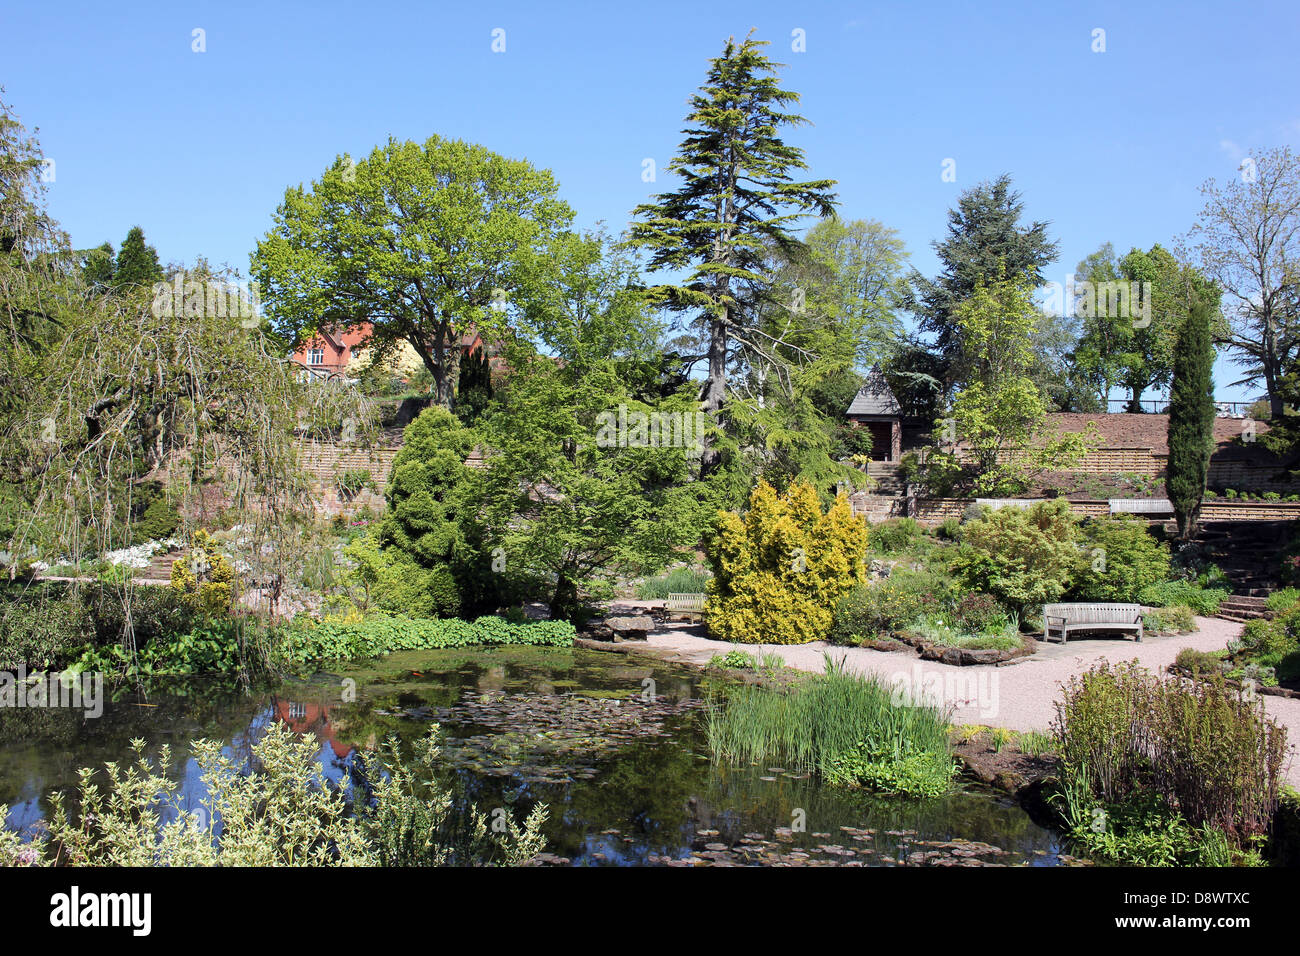 Rock Garden at Ness Botanical Gardens, Wirral - Stock Image